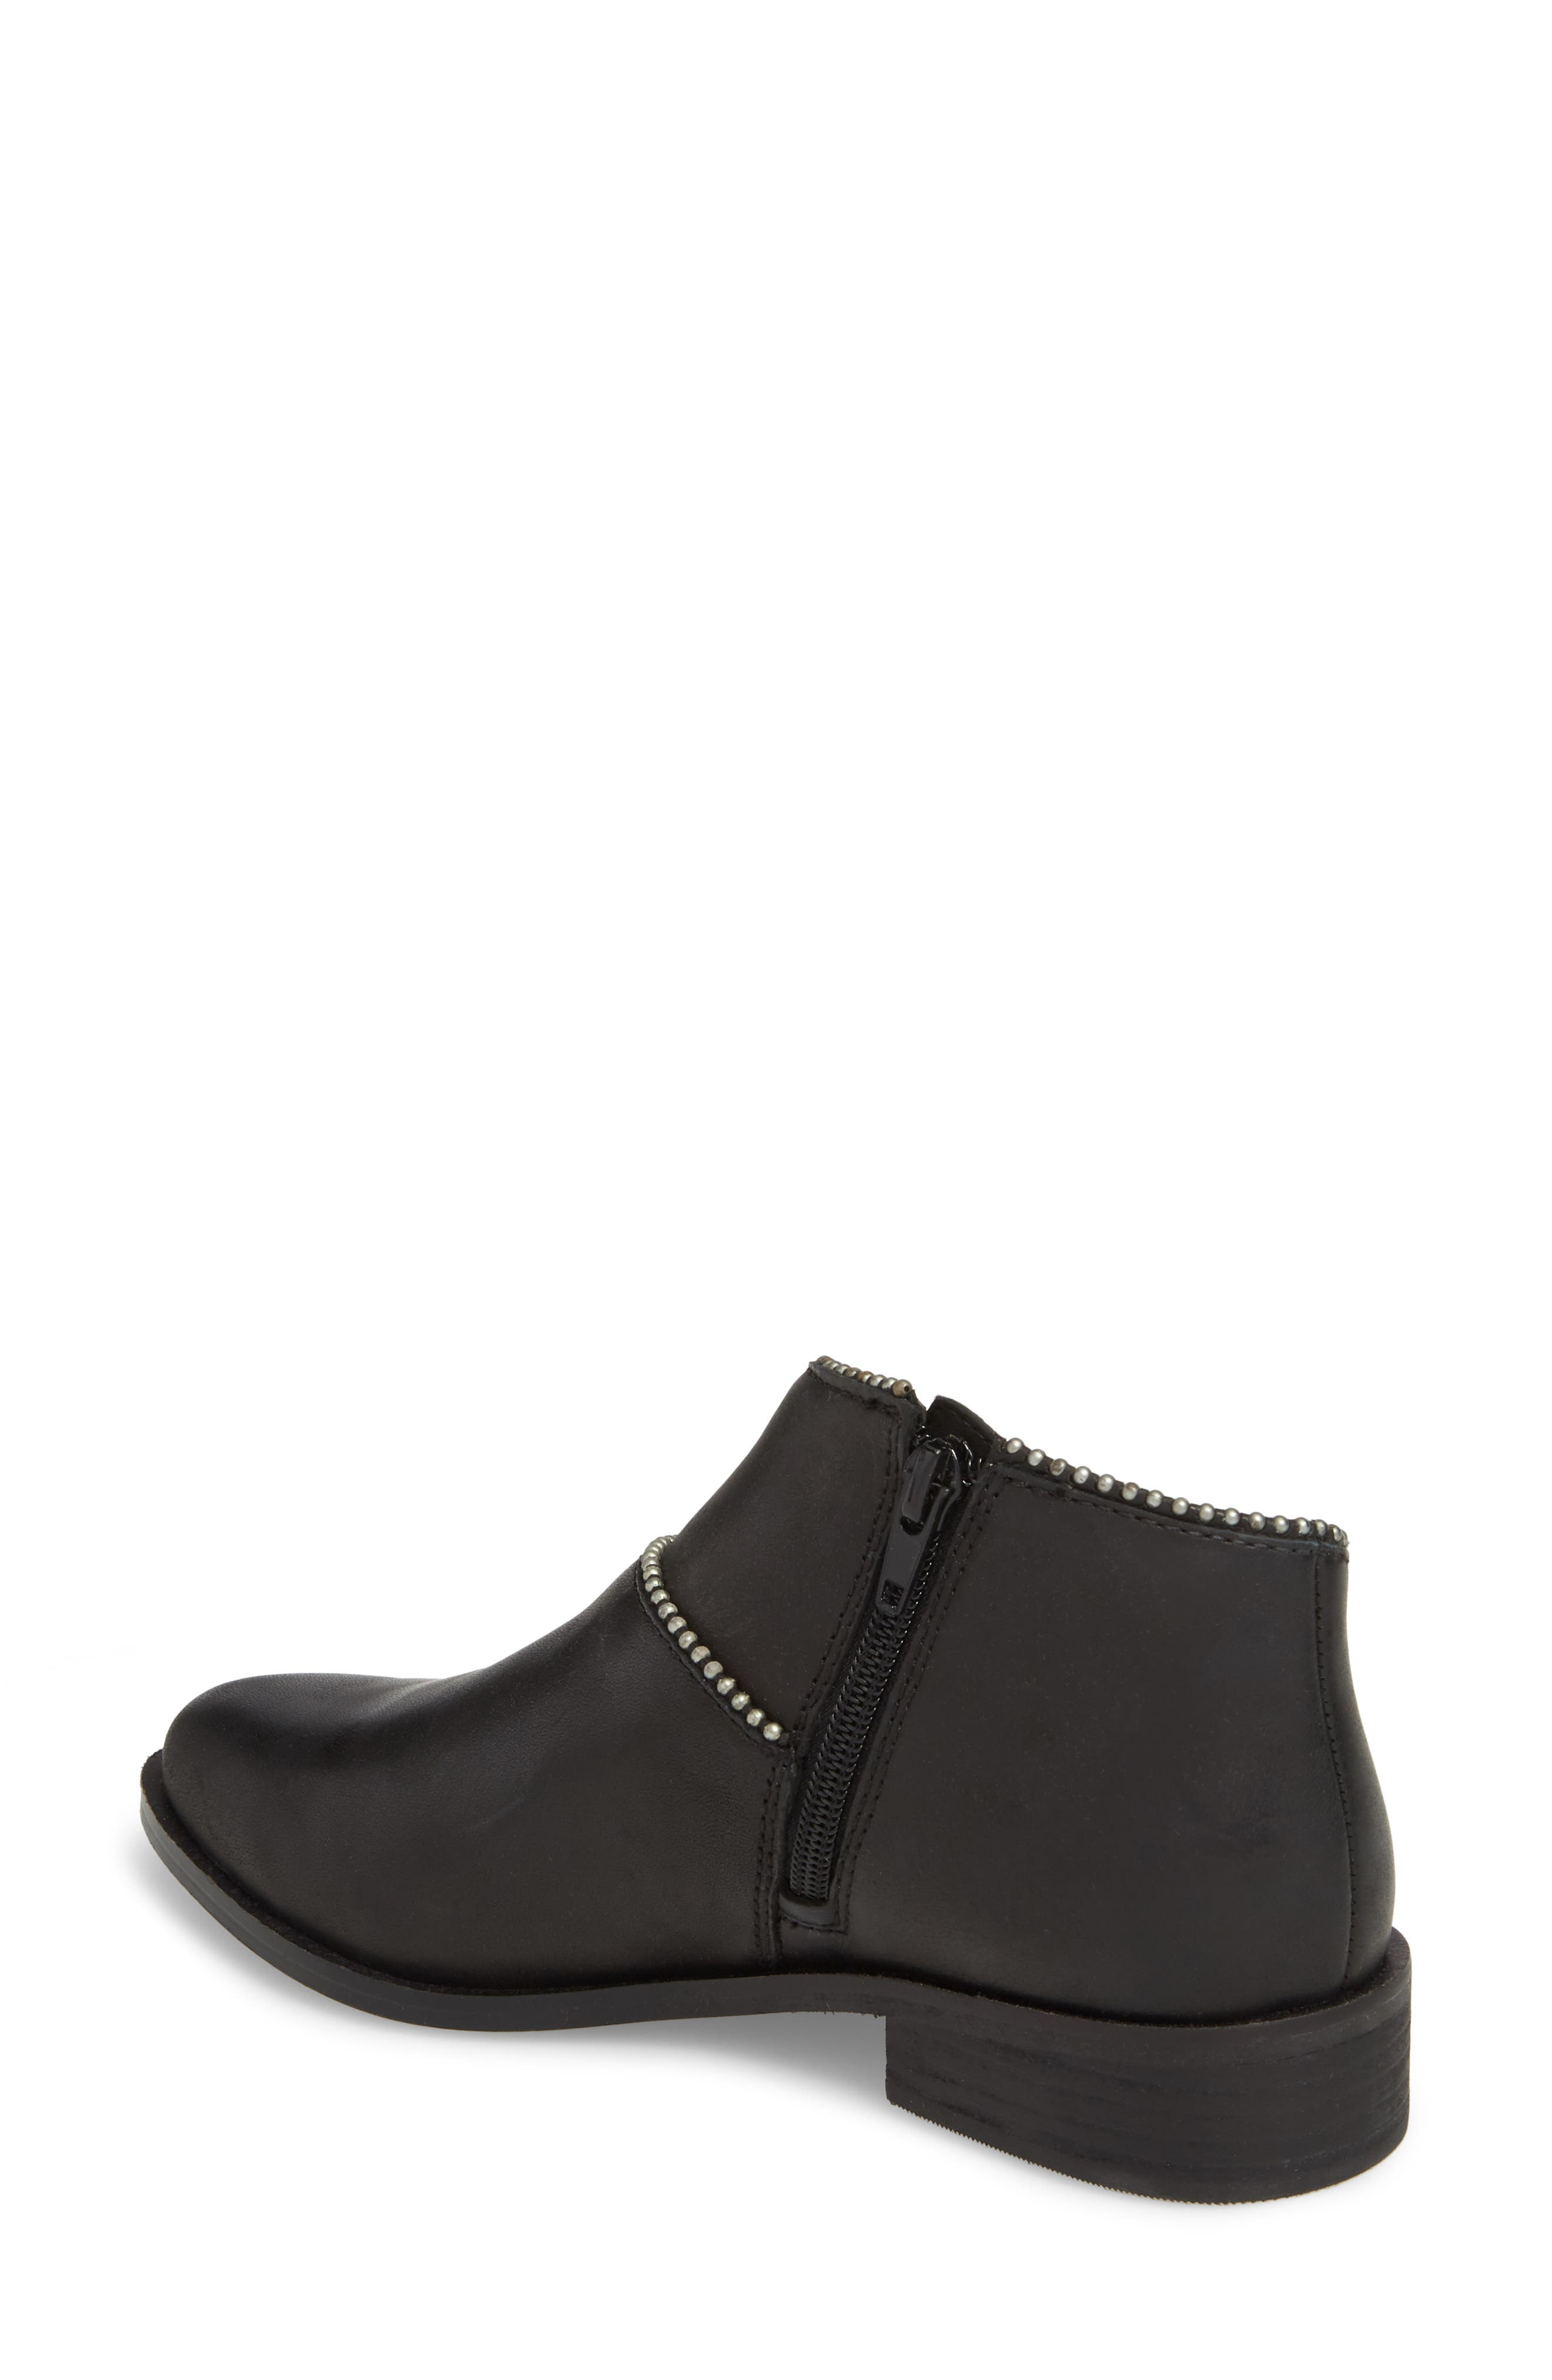 Prucella Bootie,                             Alternate thumbnail 2, color,                             BLACK LEATHER